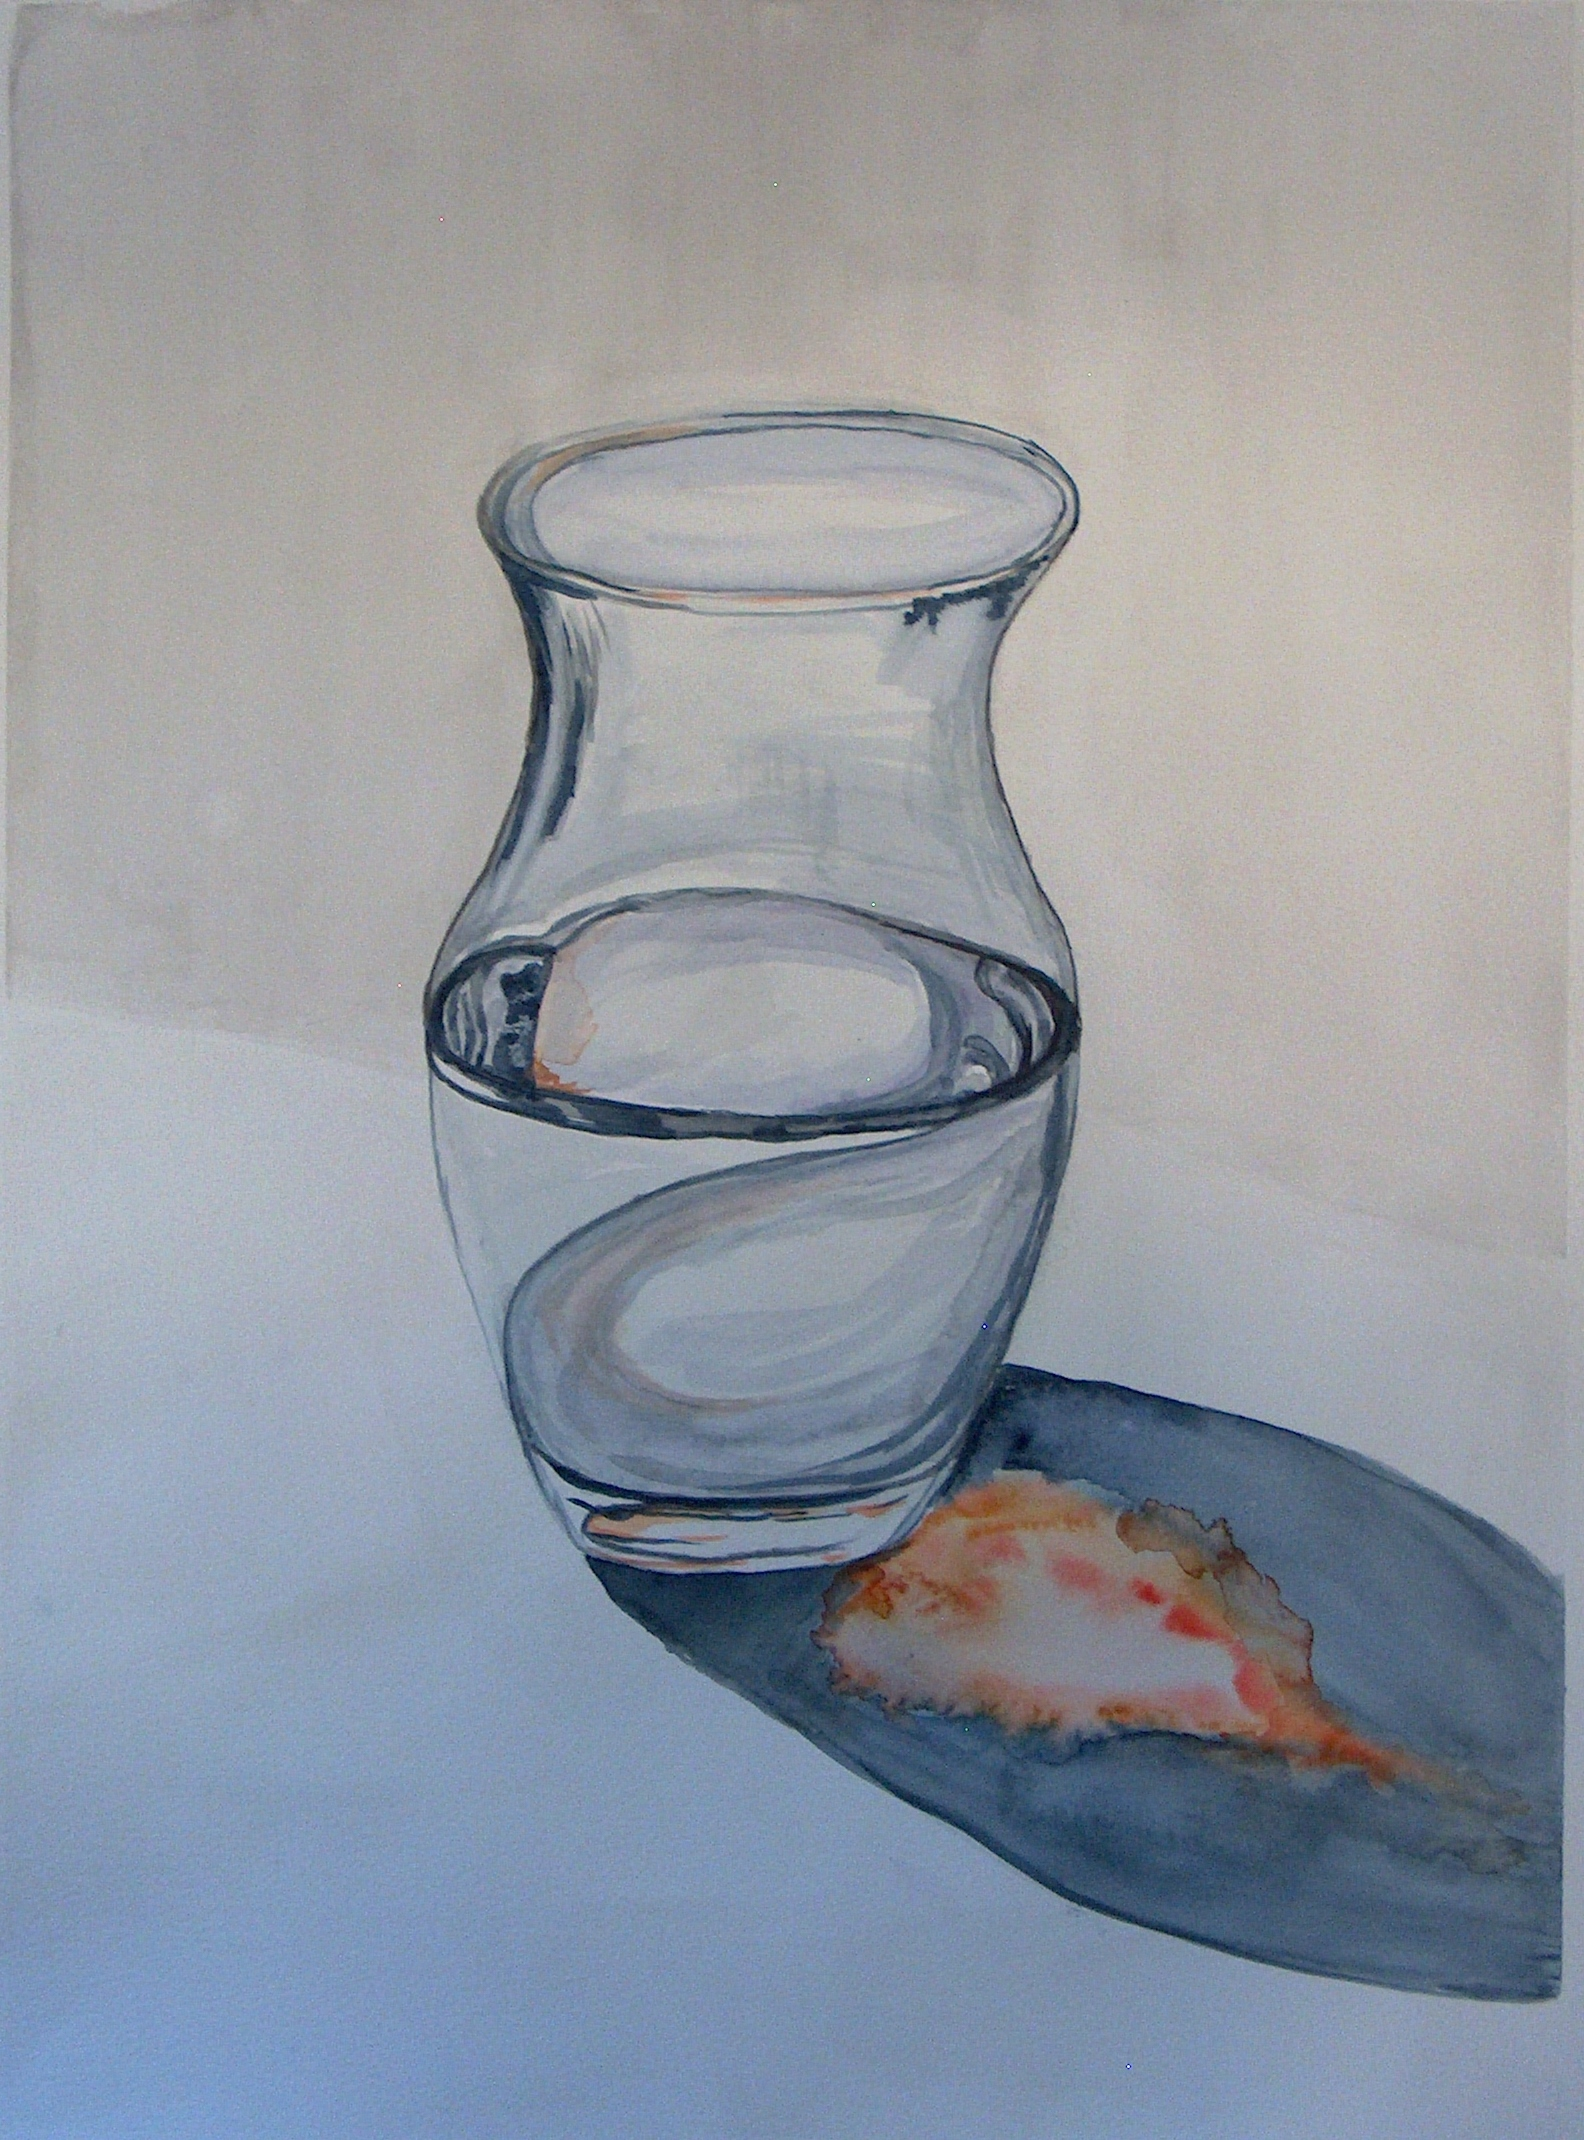 Drawn glass glass vase Eclipses glass a vase such